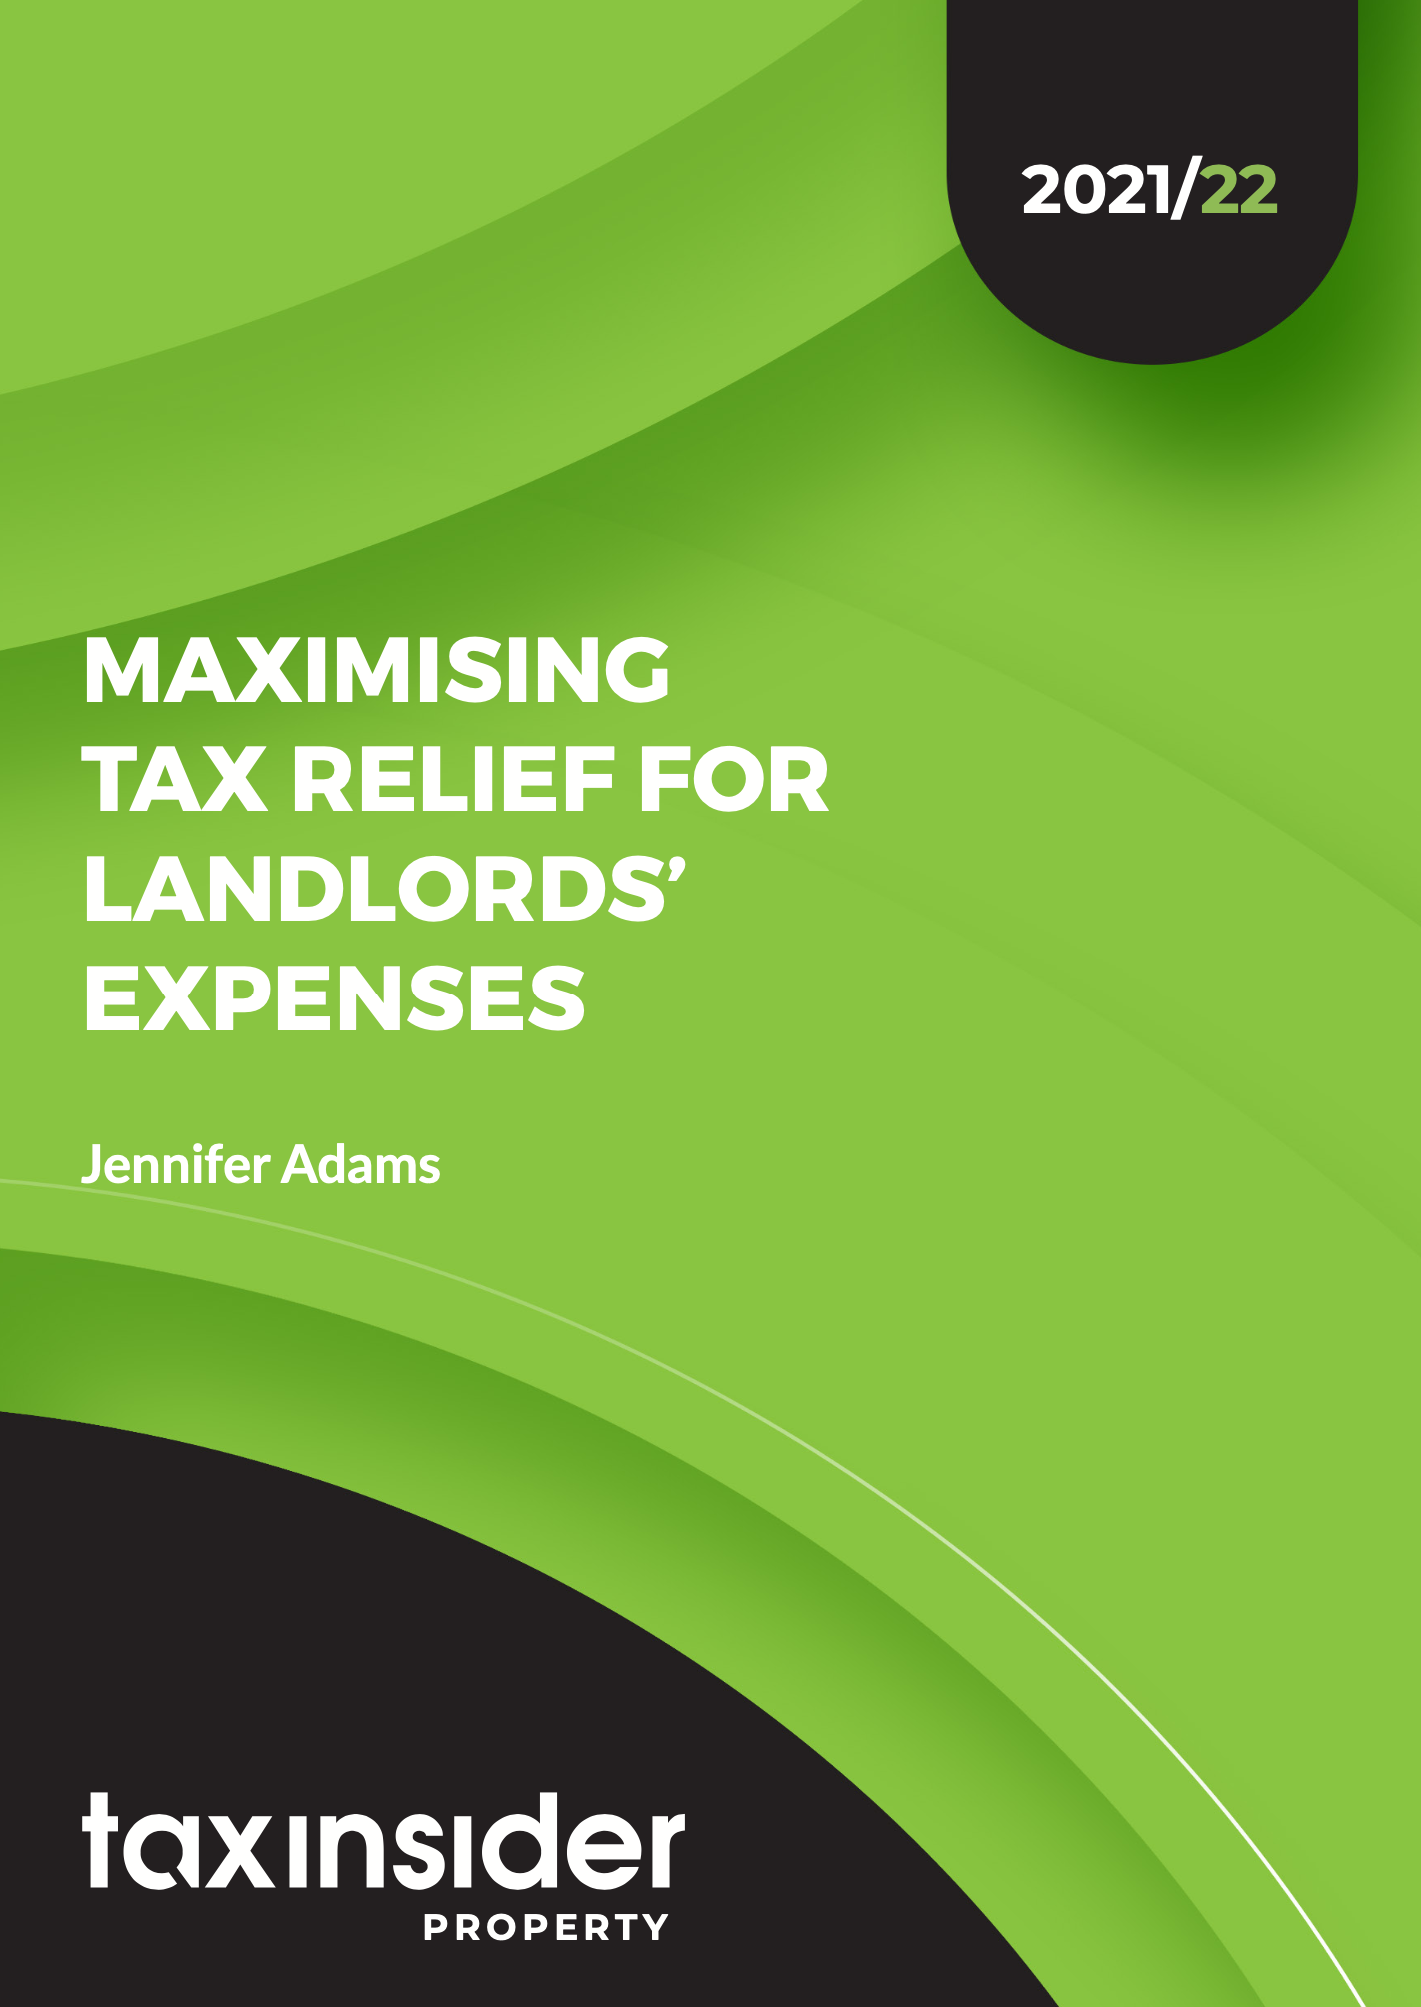 How to maximise landlord expenses property tax report cover green